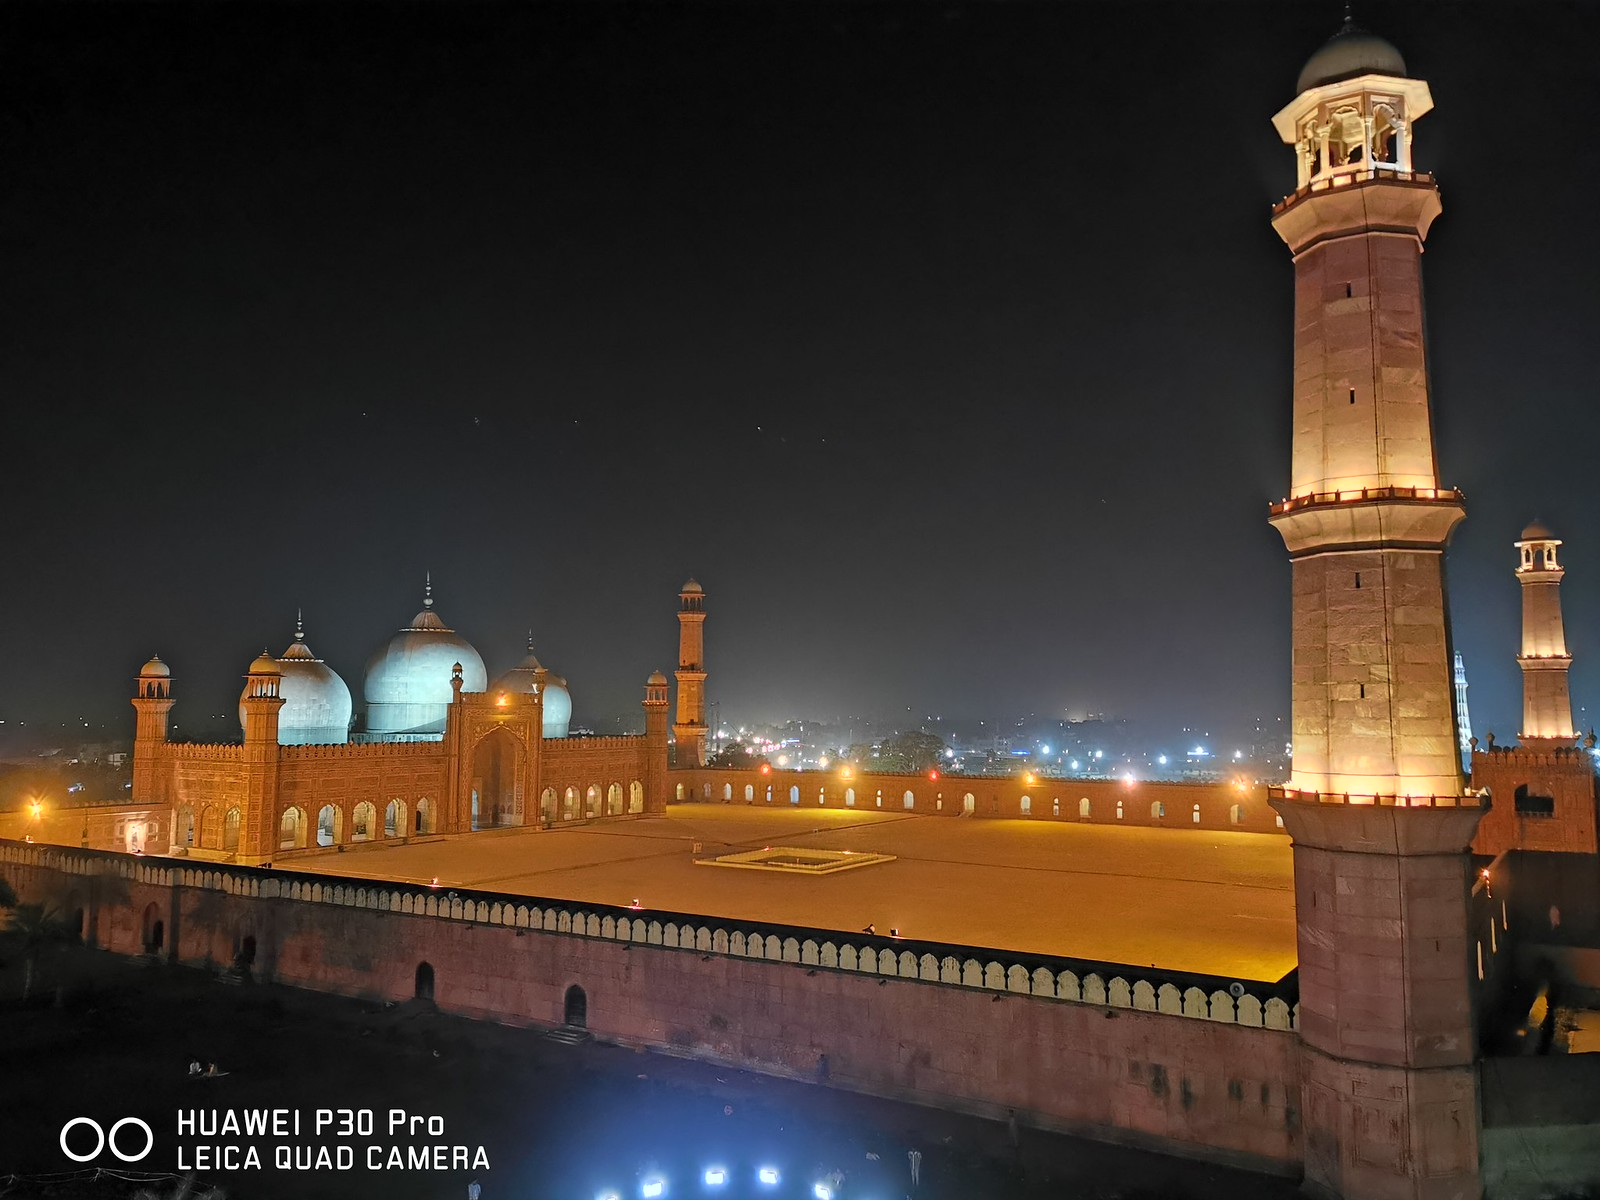 Badshahi Mosque Picture with Auto Mode on Huawei P30 Pro